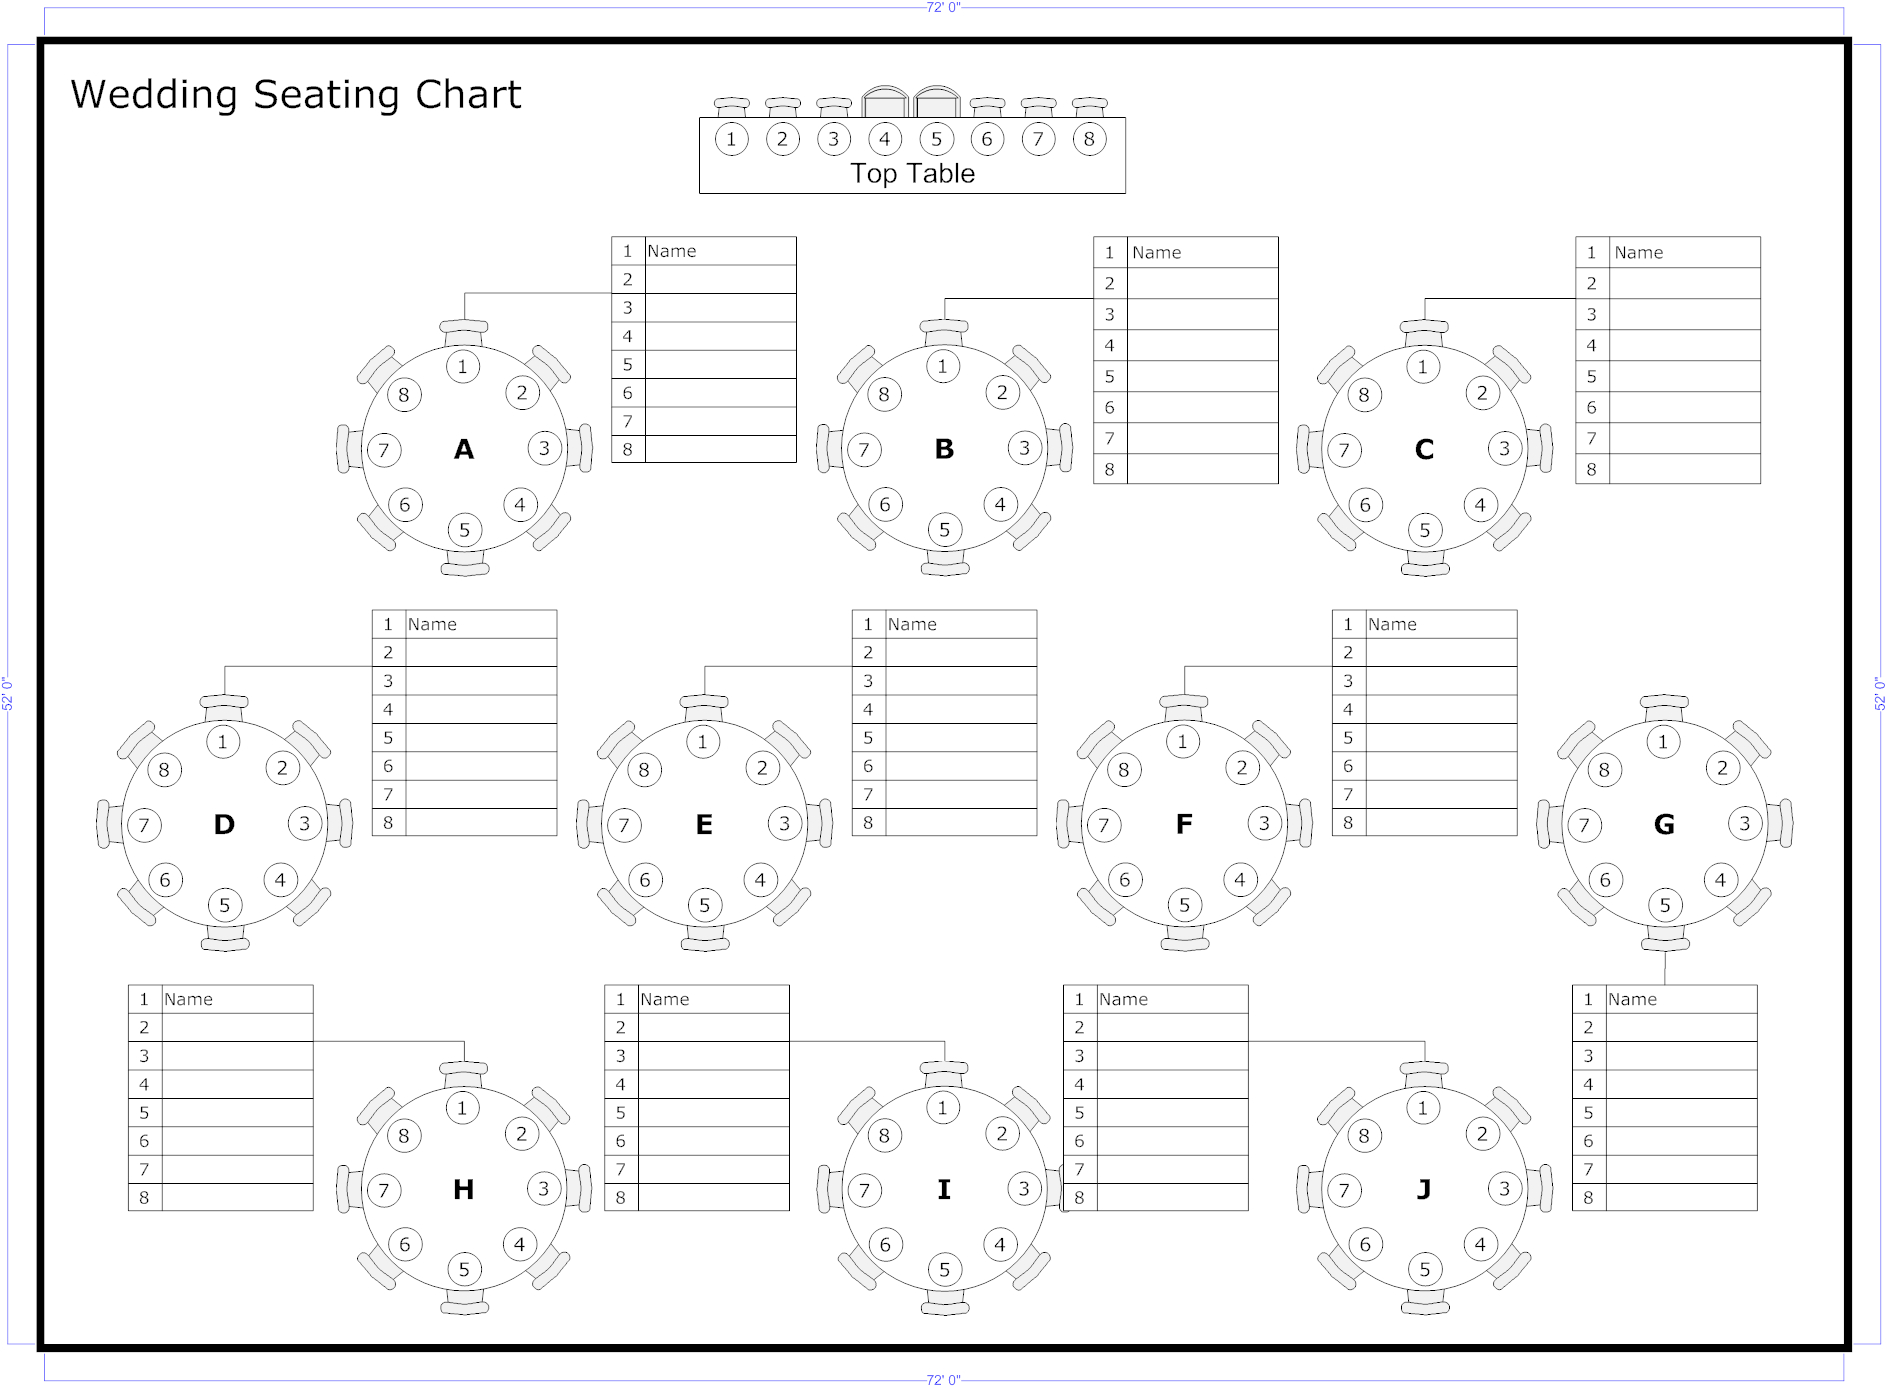 Tips To Seat Your Wedding Guests | Organized | Seating Chart Wedding - Free Printable Wedding Seating Chart Template